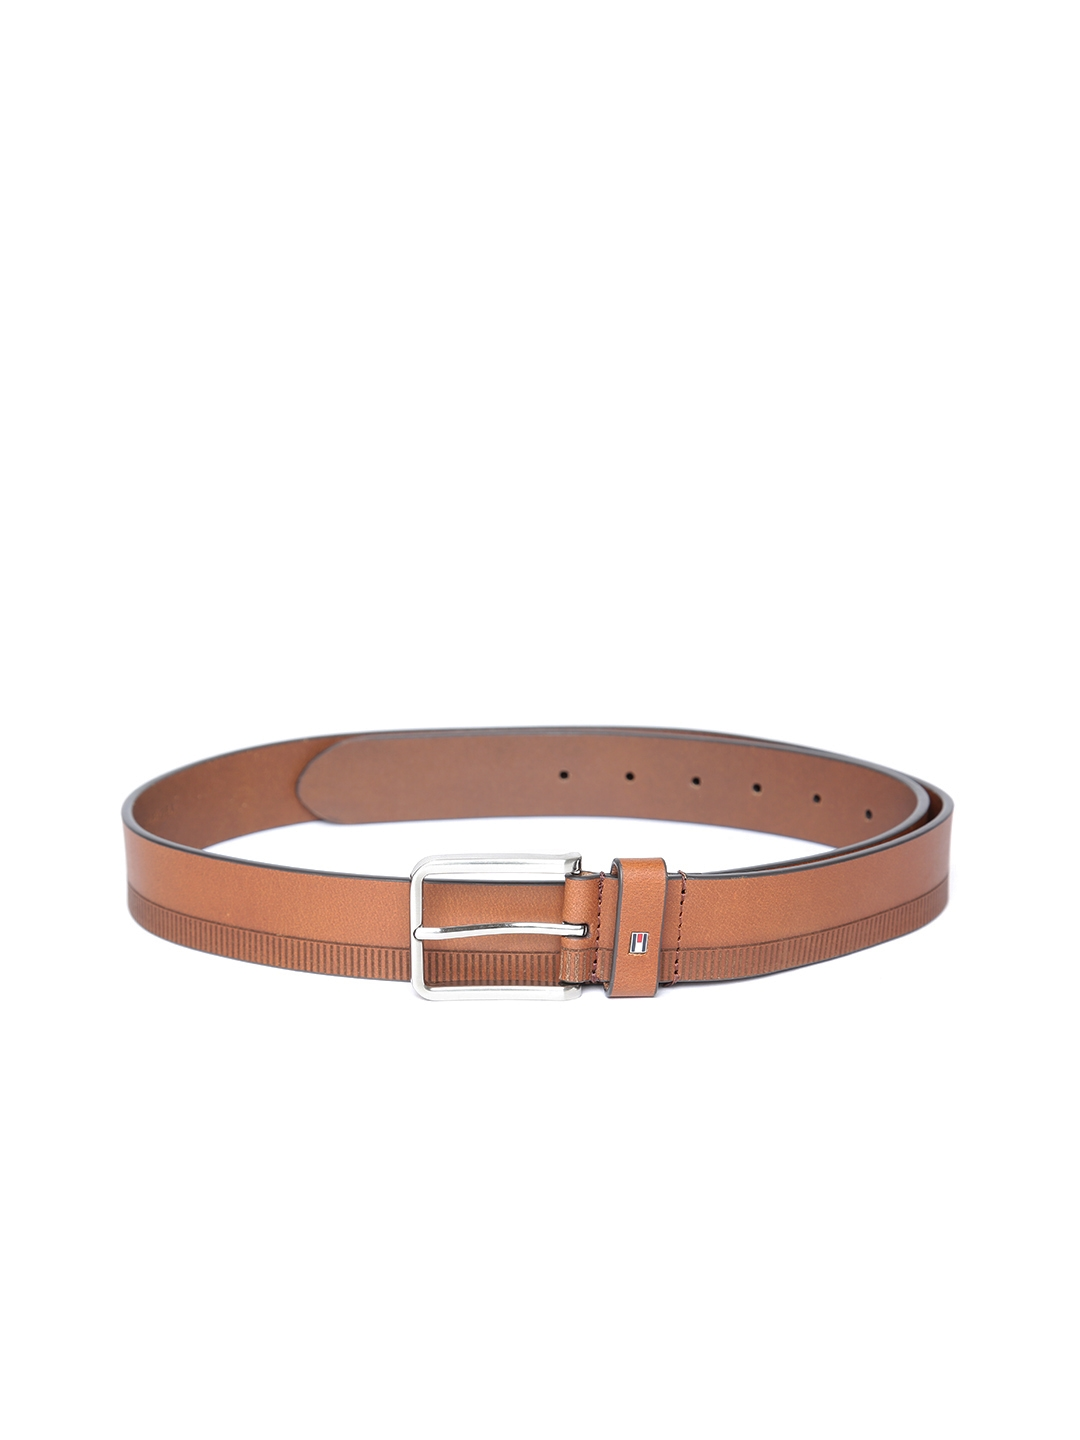 Tommy Hilfiger Men Tan Leather Printed Belt